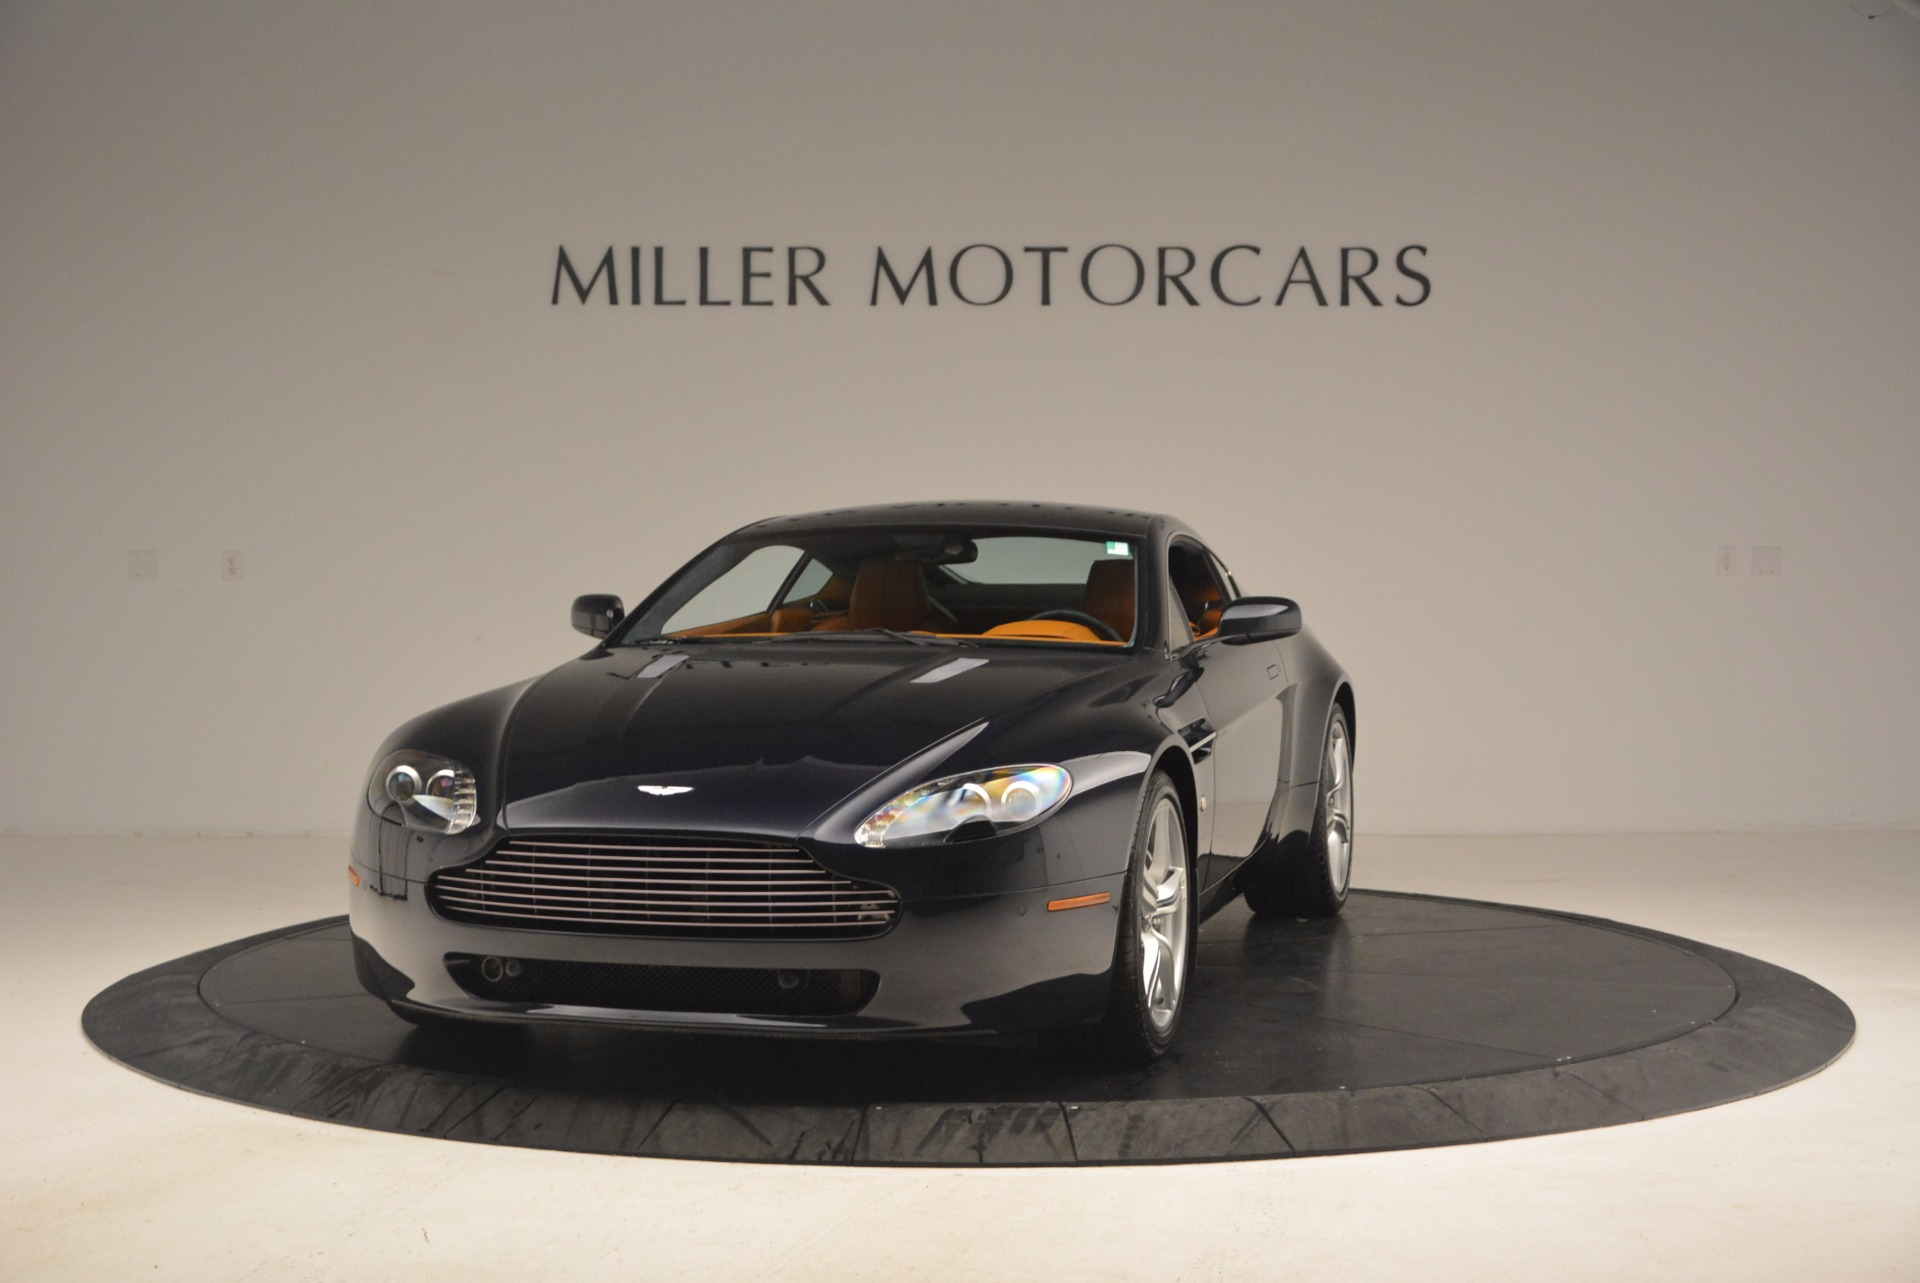 Used 2009 Aston Martin V8 Vantage for sale Sold at Rolls-Royce Motor Cars Greenwich in Greenwich CT 06830 1